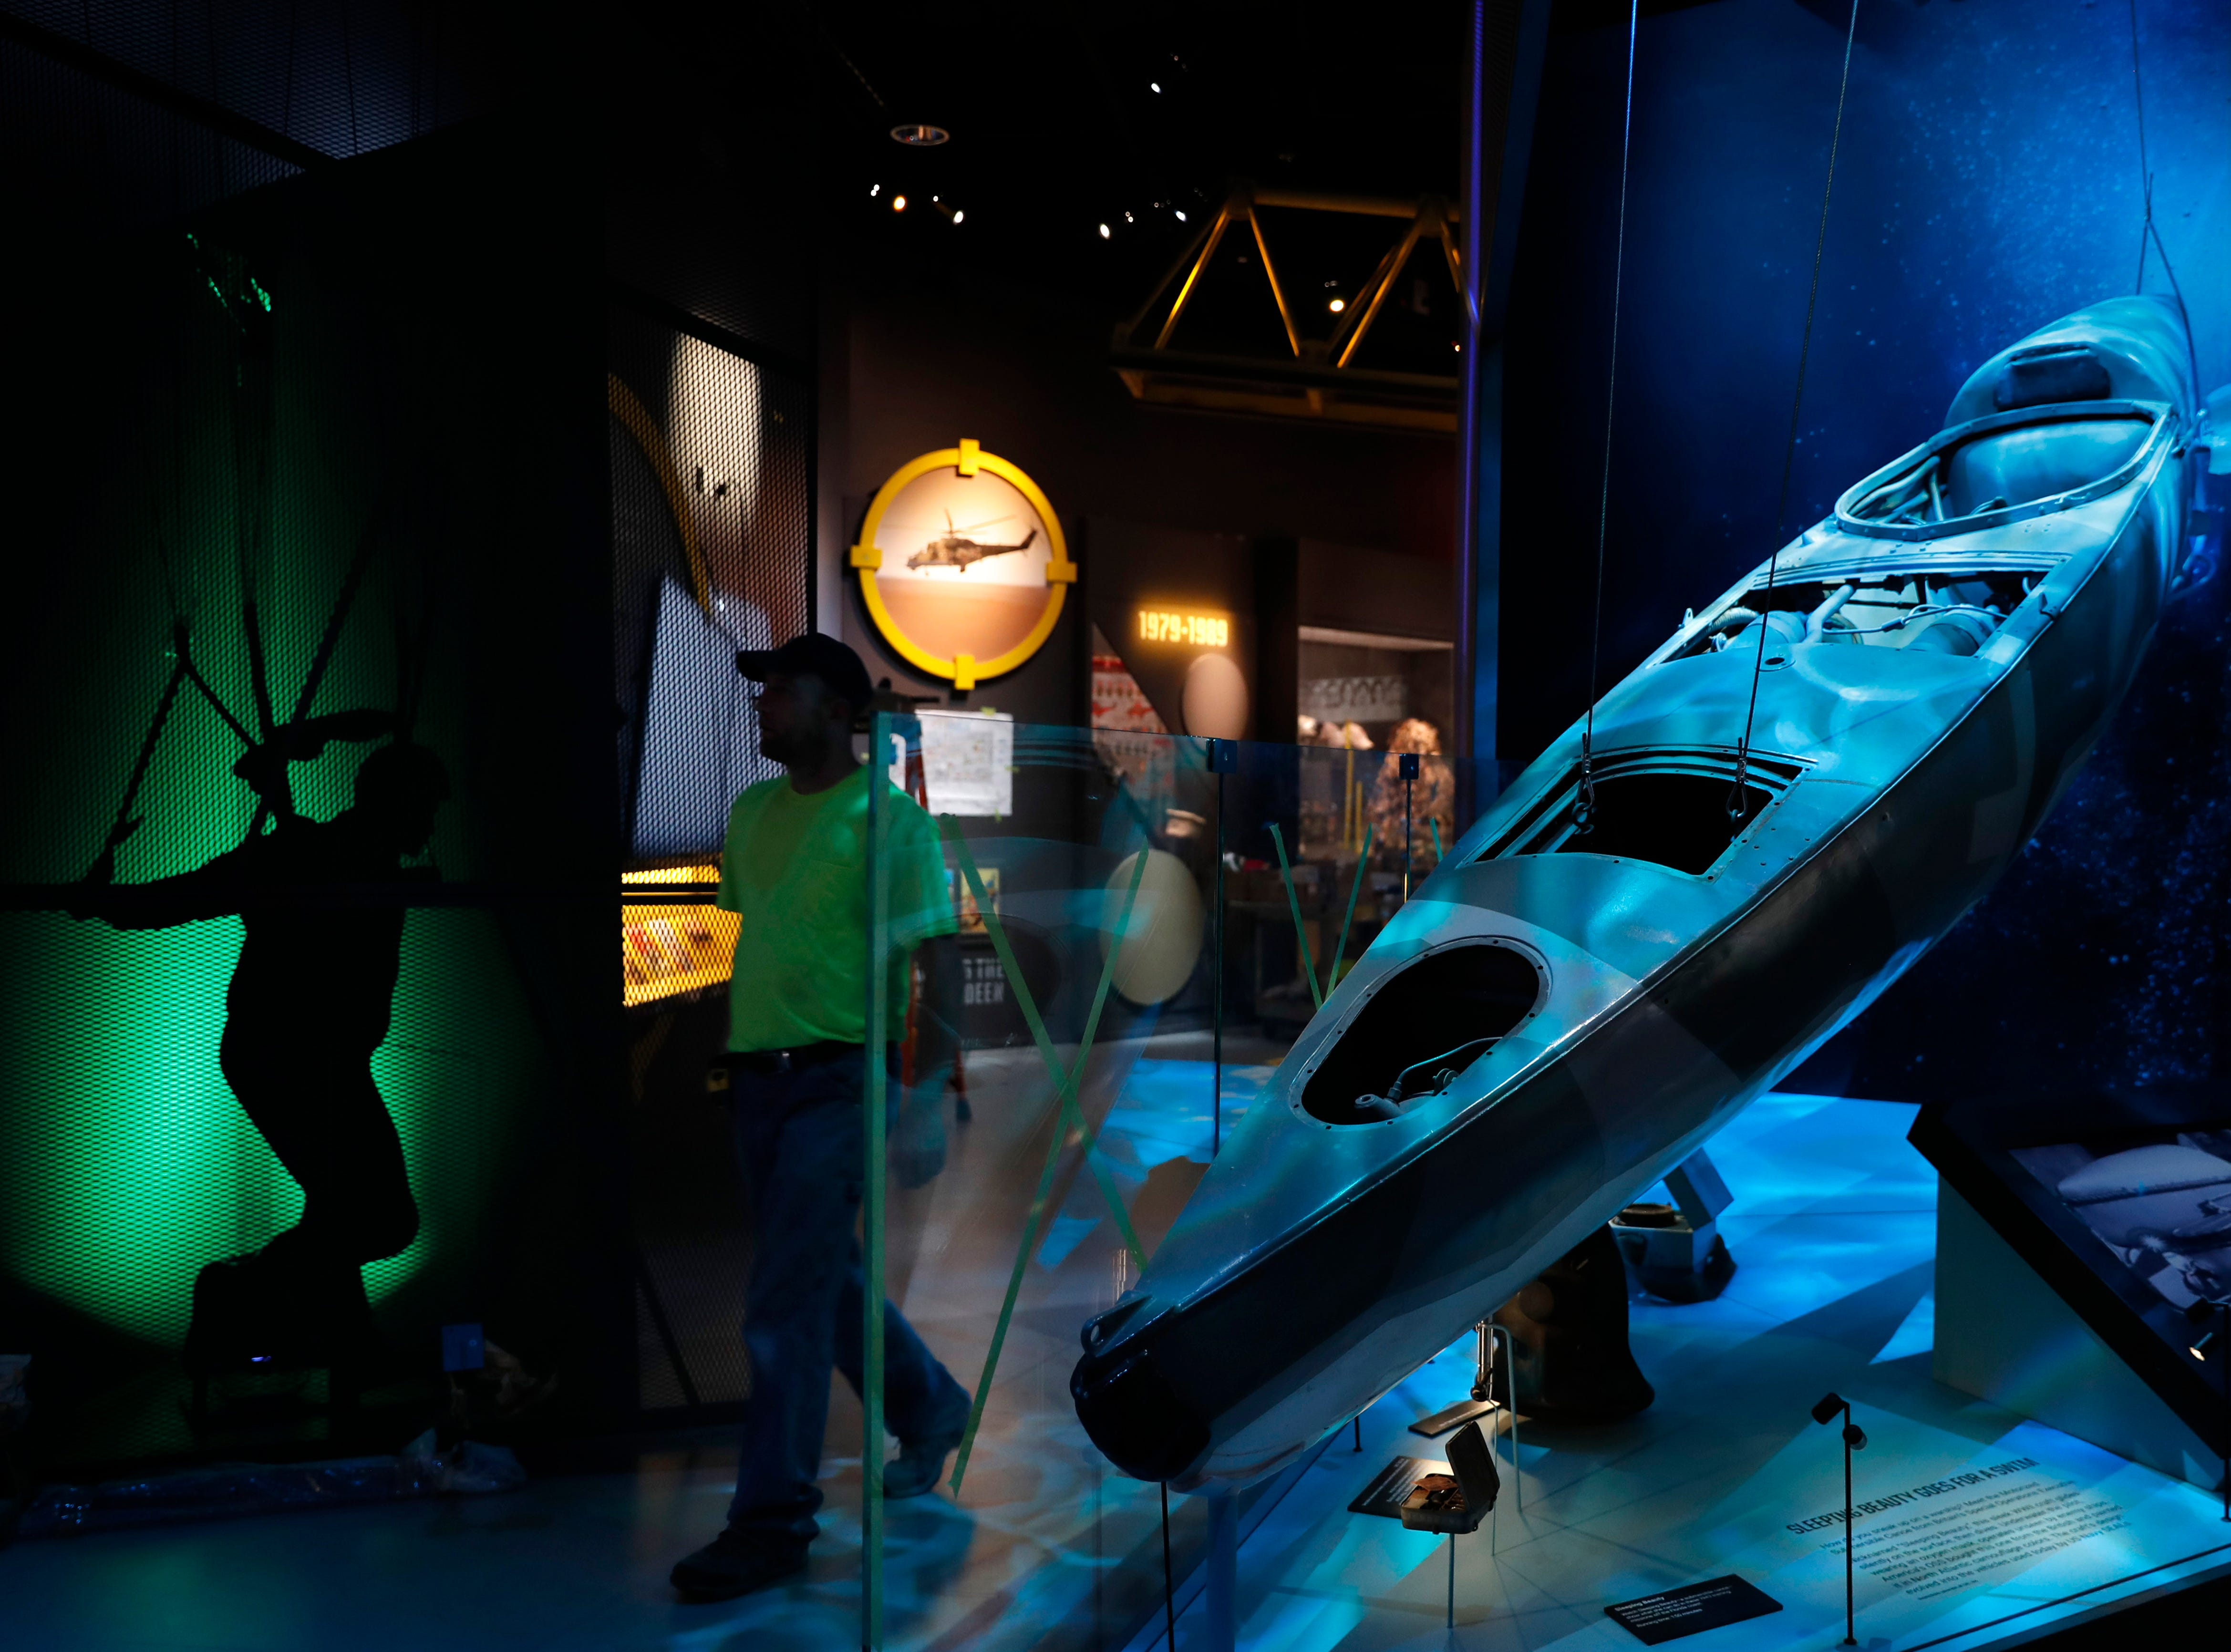 Upon entry, visitors can opt to get a cover identity and mission along with a badge with radio-frequency technology that will recognize them as they walk up to interactive exhibits. Their spy skills are tested throughout the tour and at the end they can find out if they're better suited to be an intelligence officer in the field, for example, or an analyst at CIA headquarters.